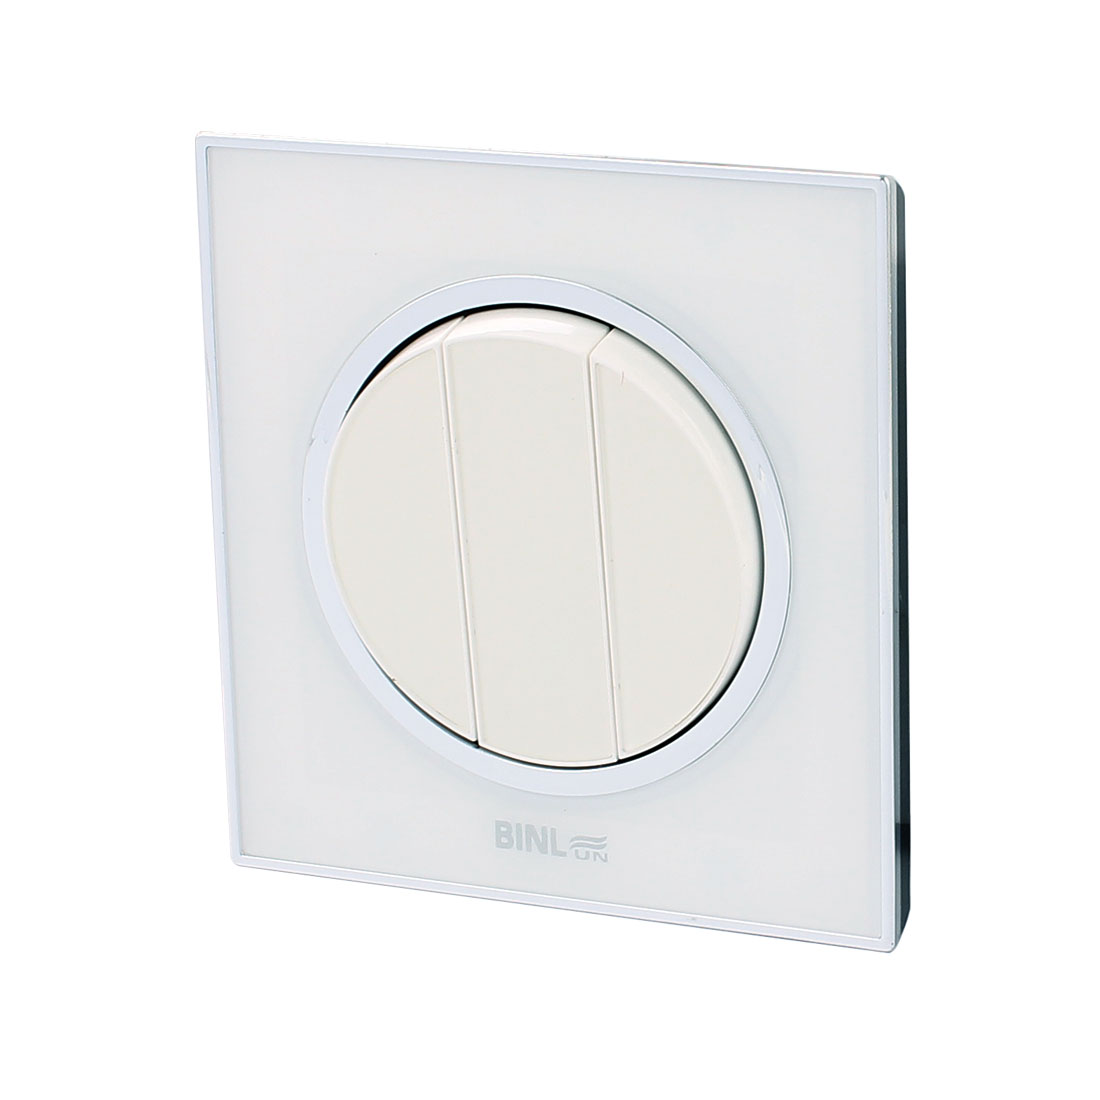 AC 220V 10A 3 Gang 1 Way On/Off White Press Button Wall Mounted Panel Switch